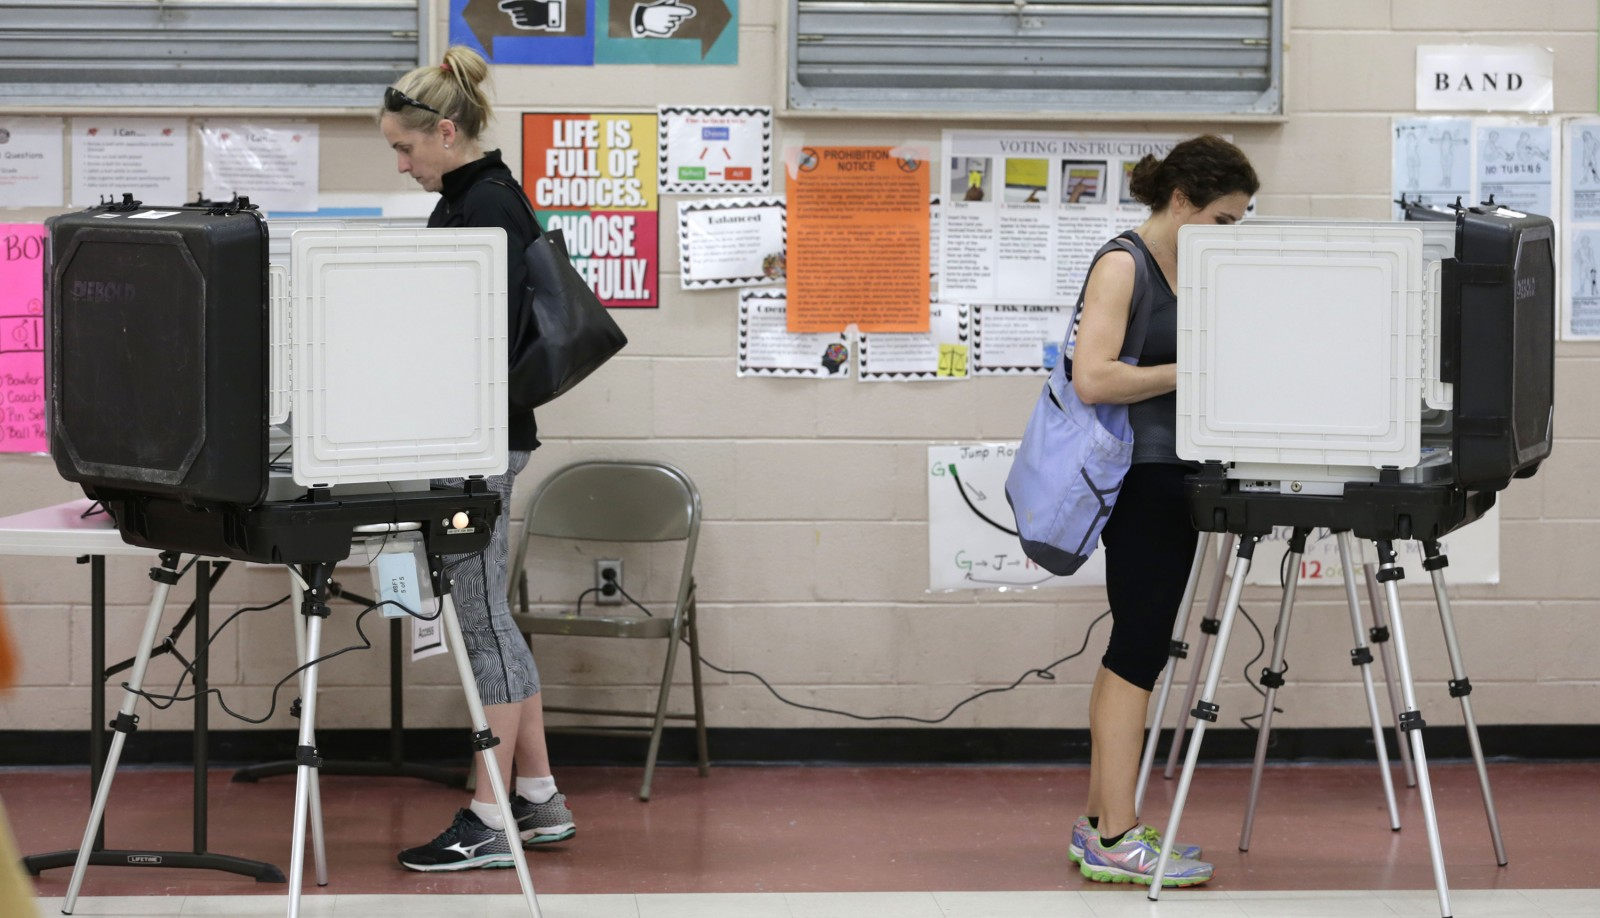 Voters sign in at Morris Brandon Elementary on March 1, 2016 in Atlanta, Ga.